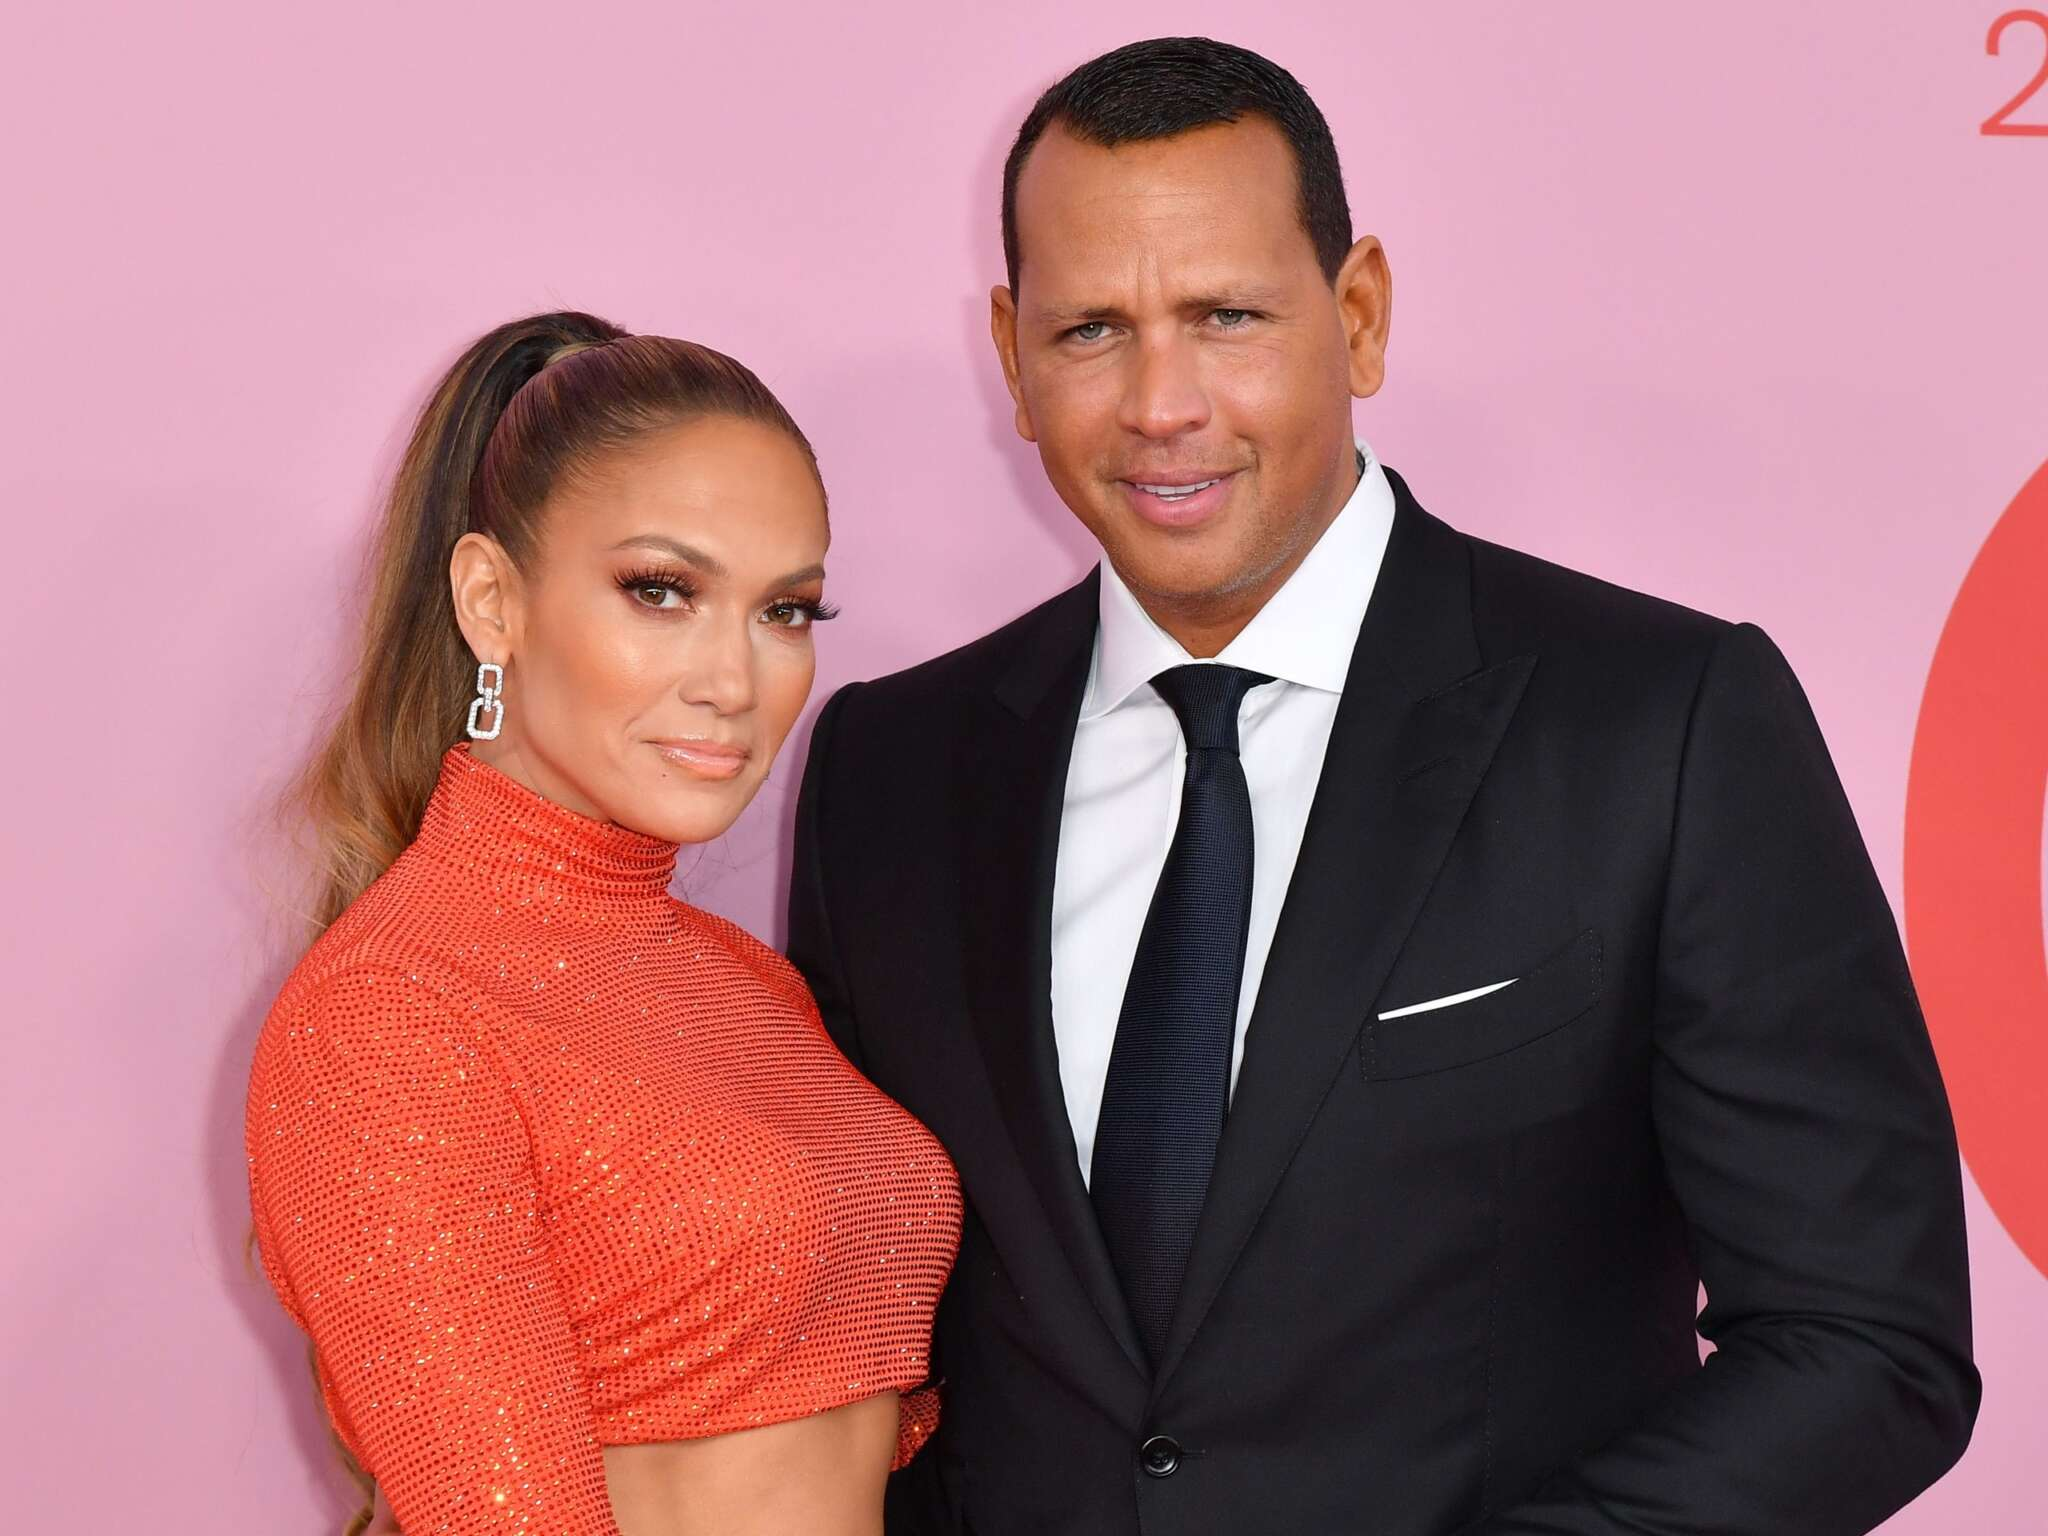 """jennifer-lopez-and-alex-rodriguez-the-truth-about-their-relationship-status-source-says-its-hanging-by-a-thread"""